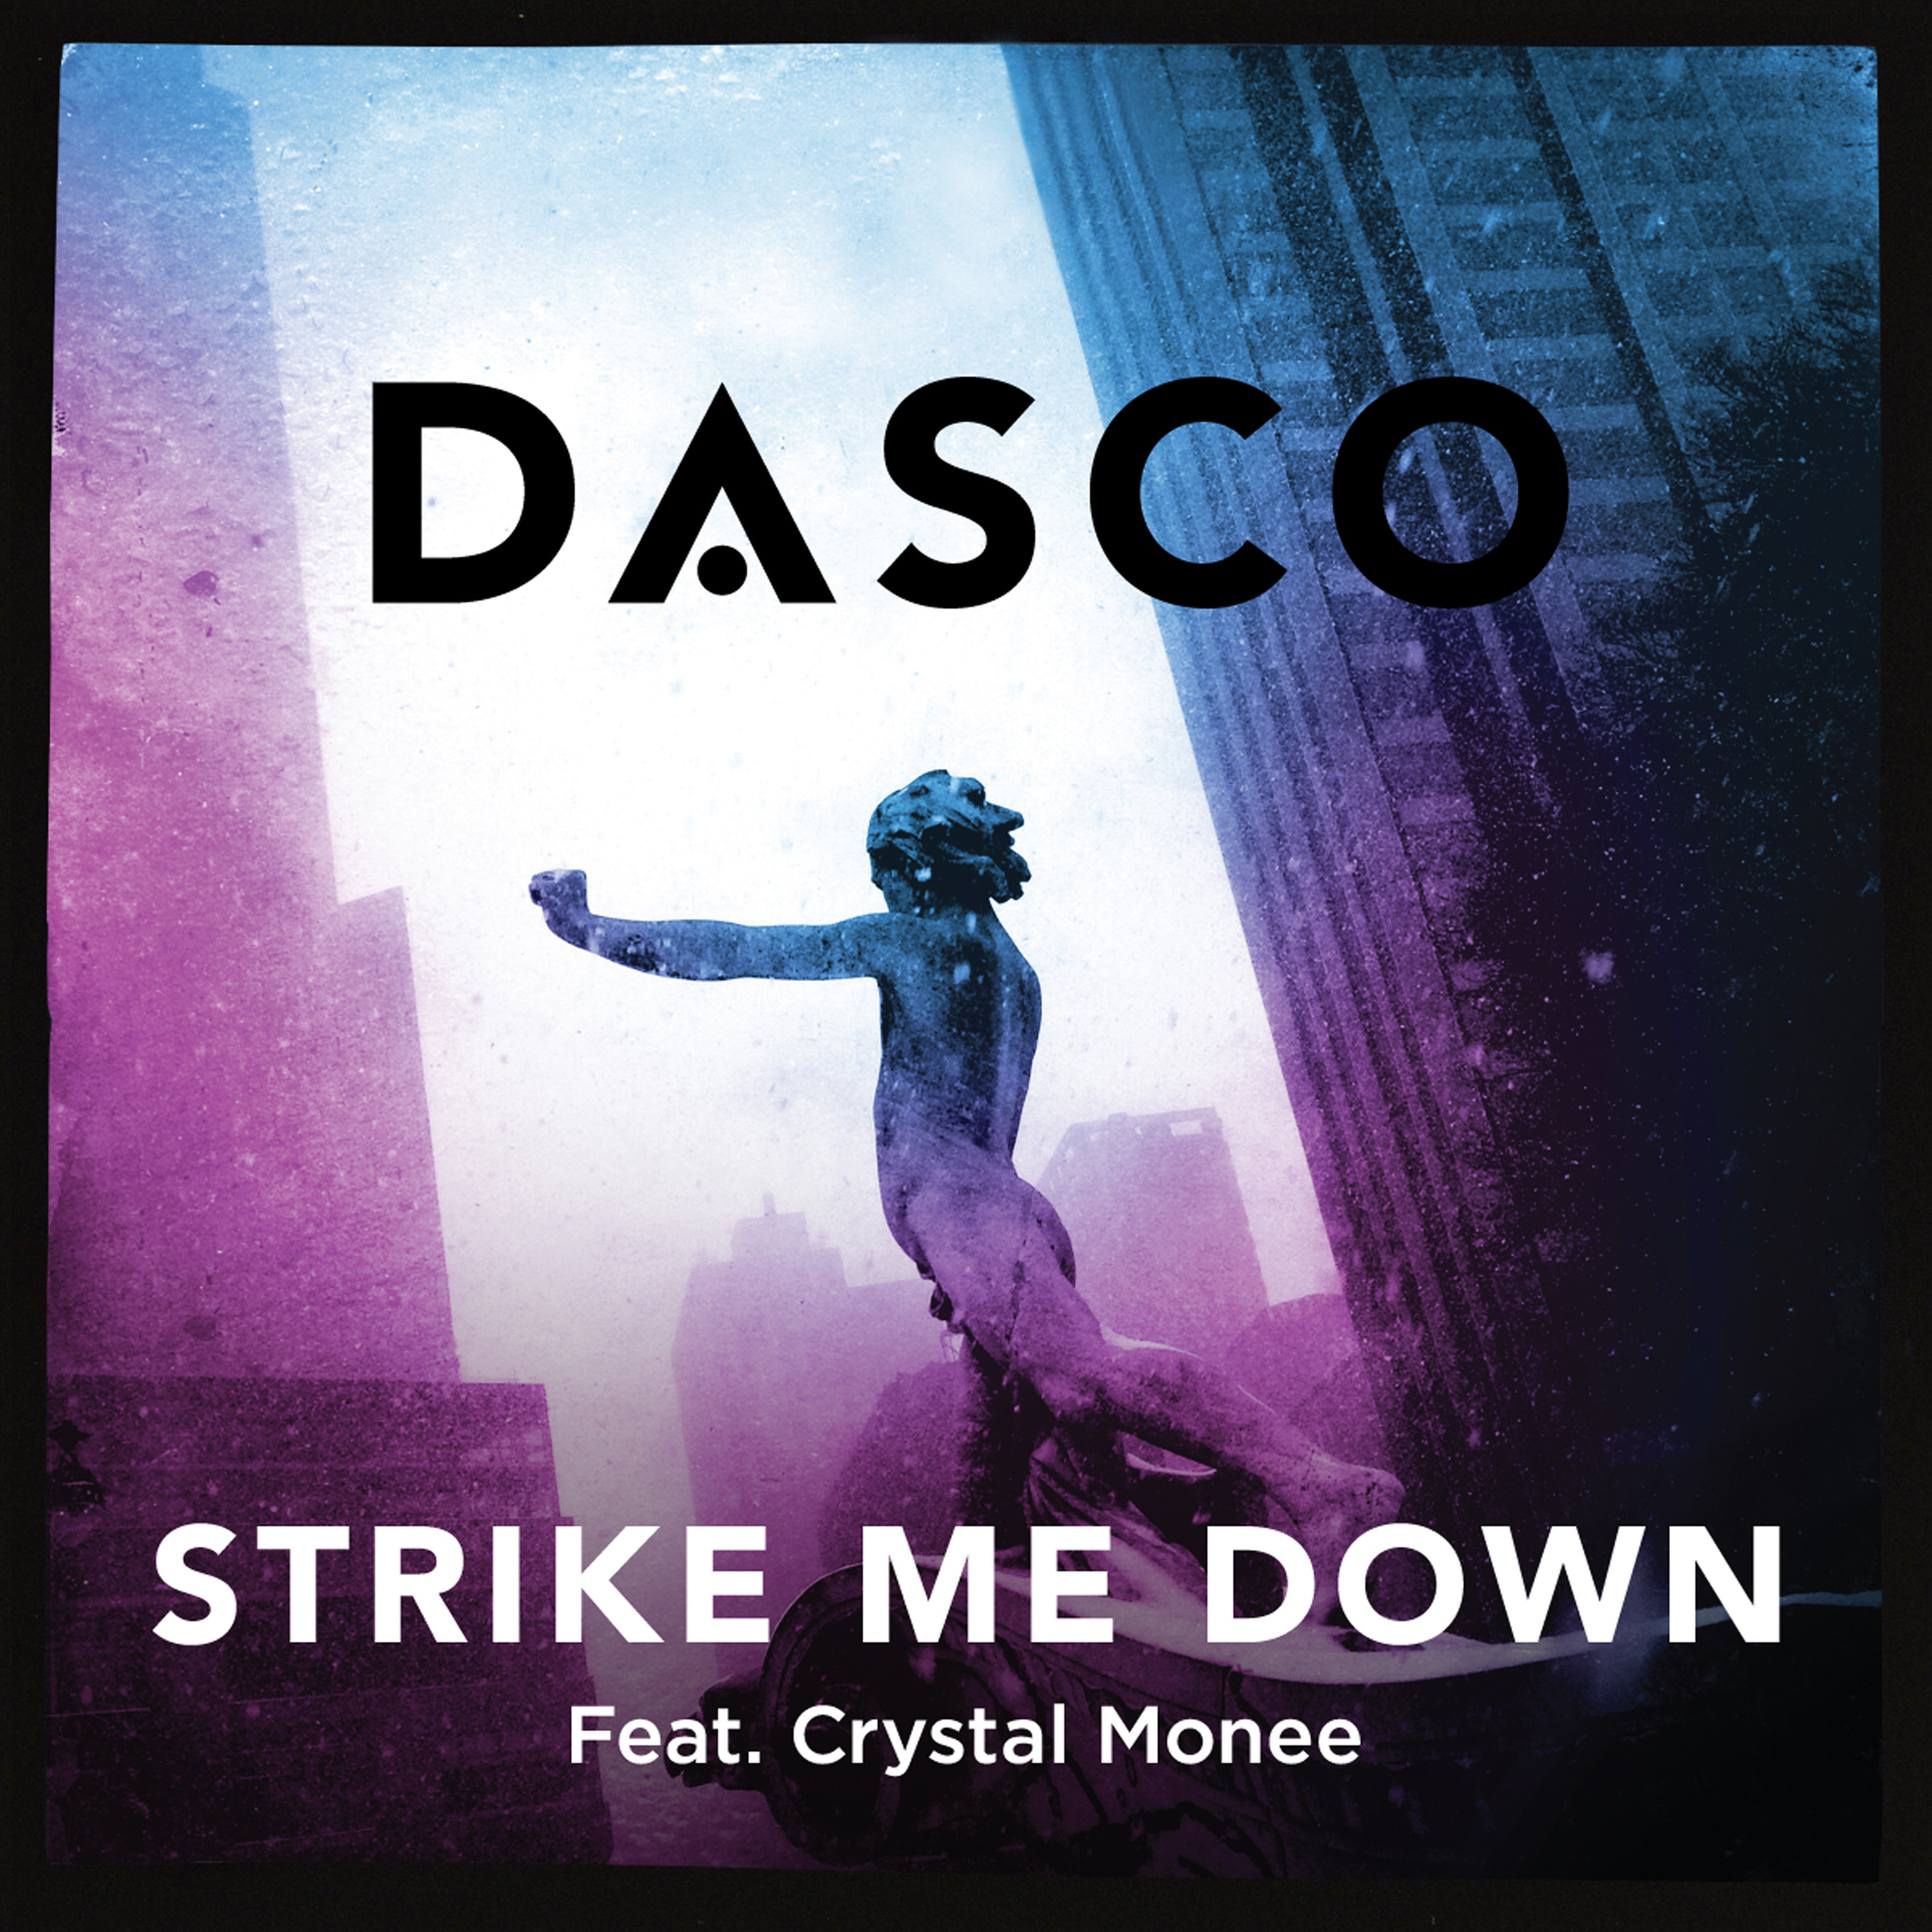 DASCO - Strike Me Down (feat. Crystal Monee)